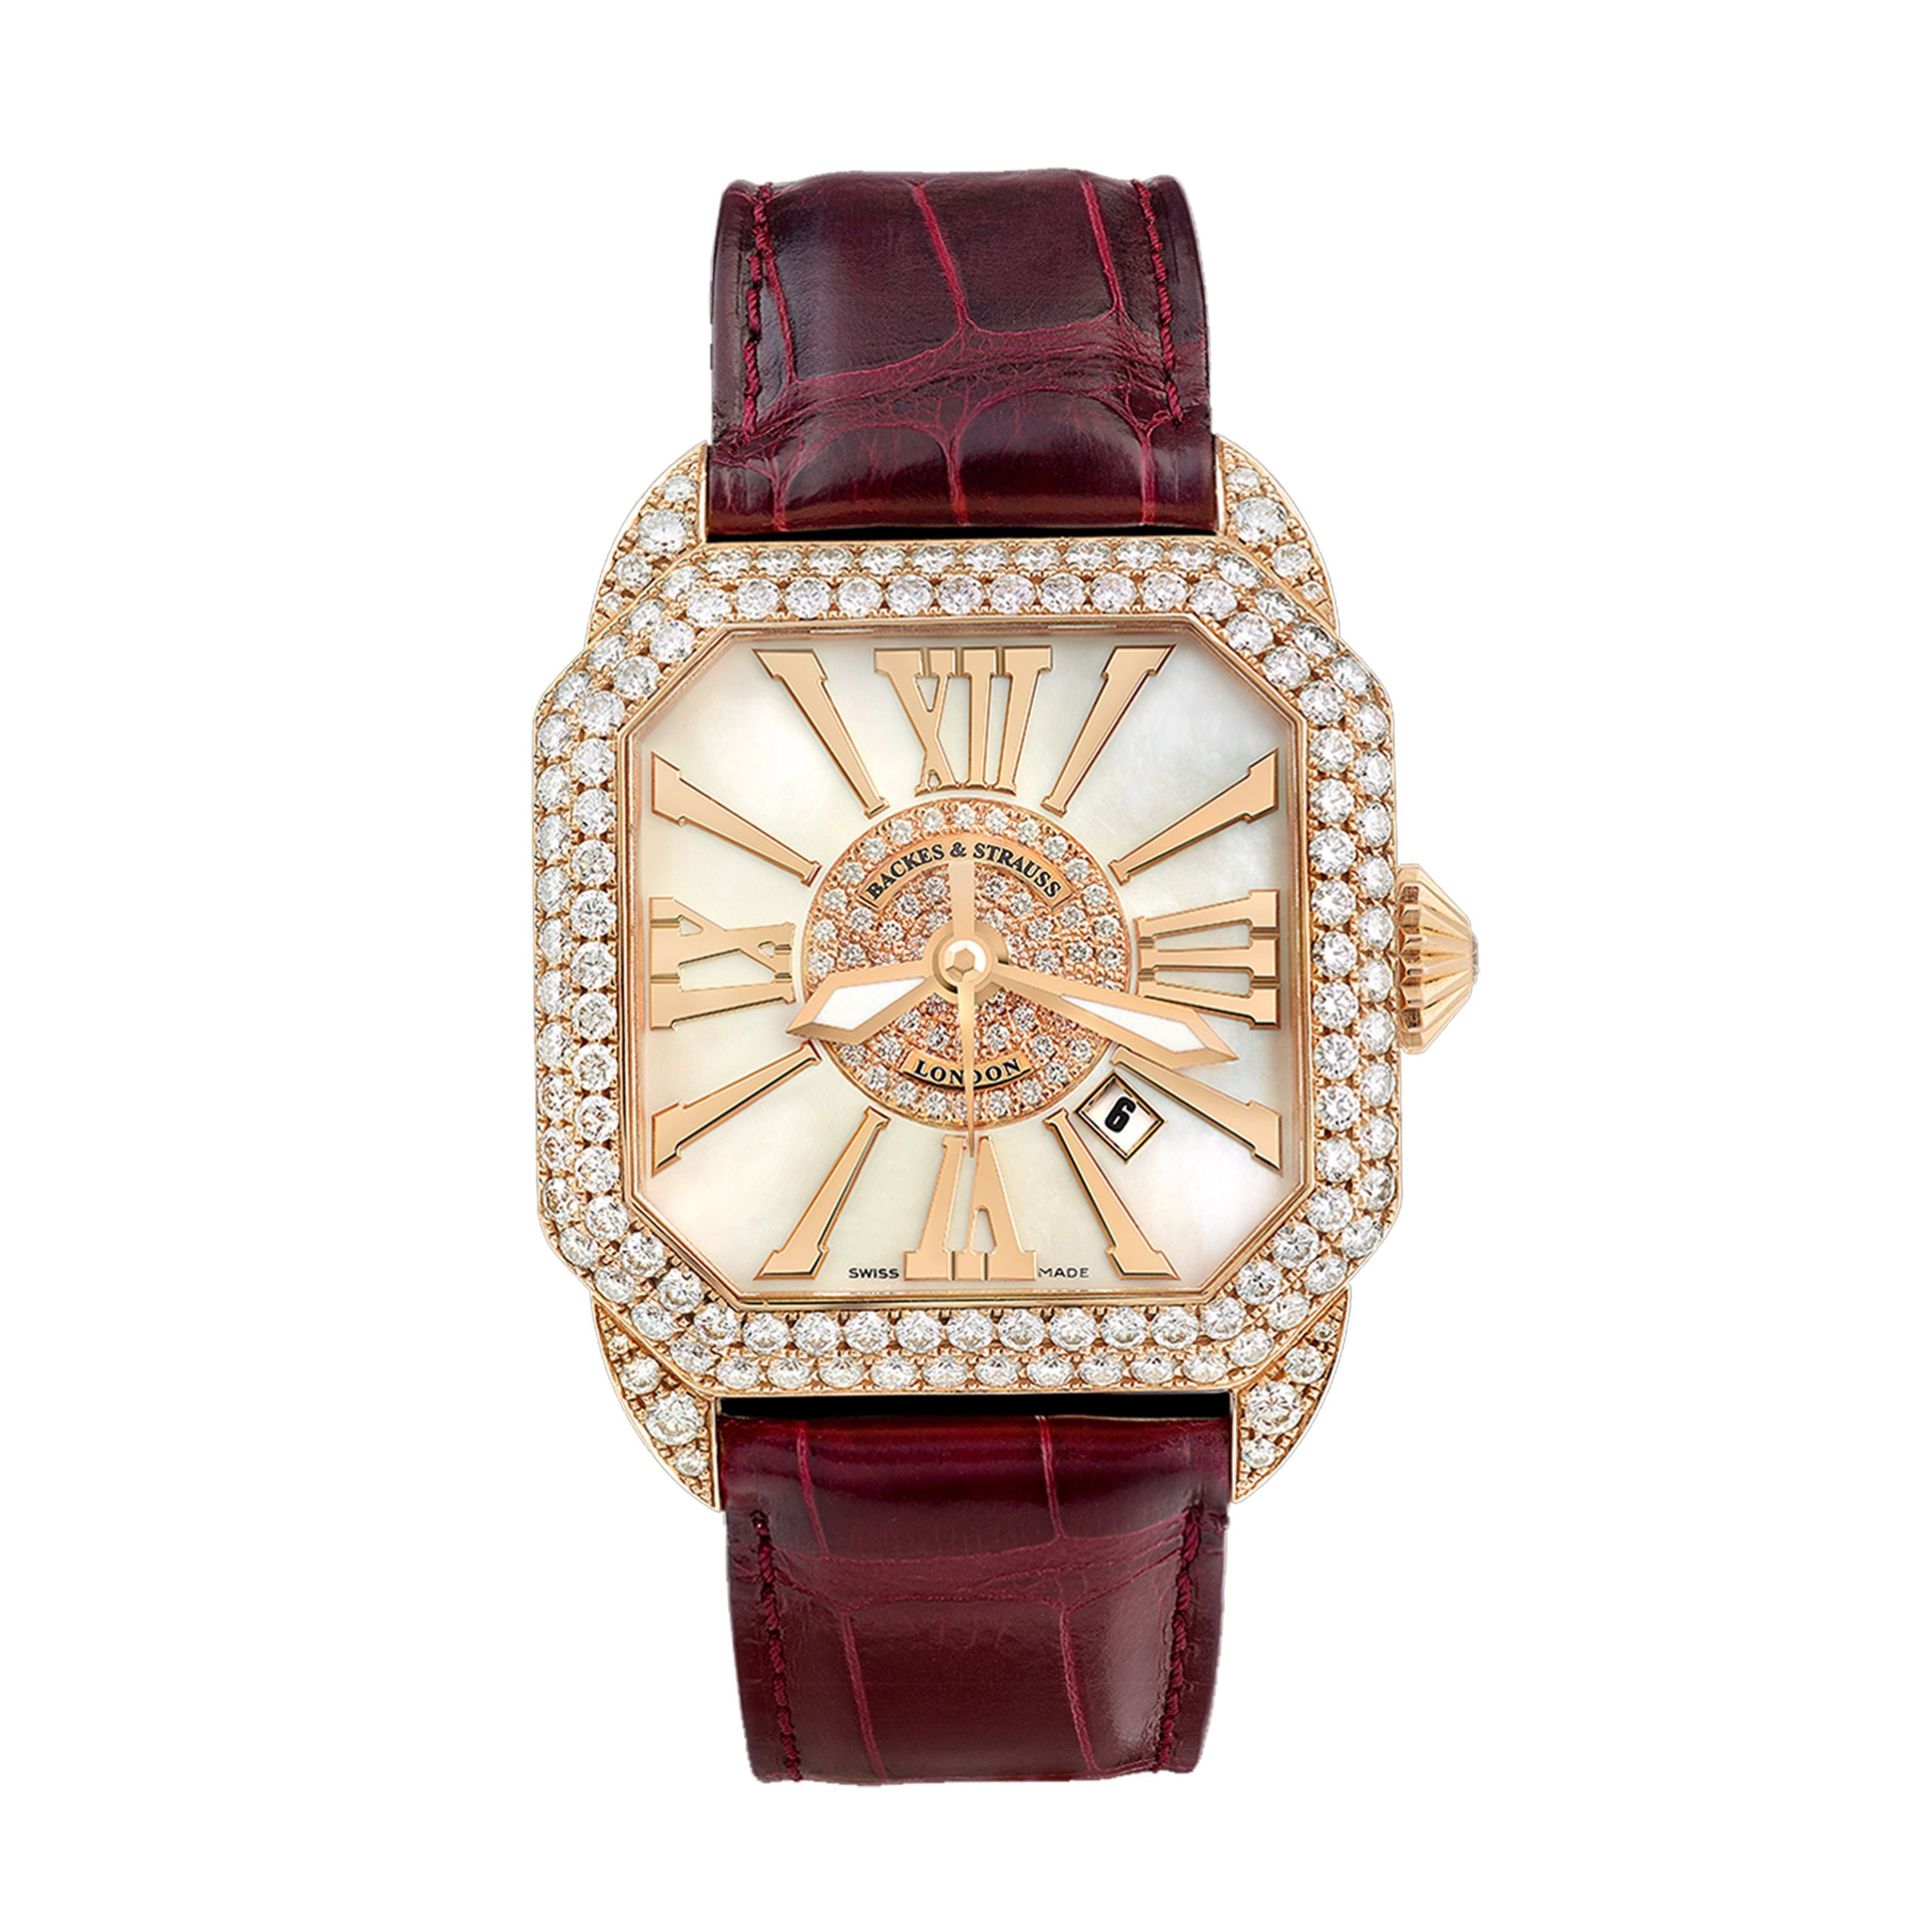 Berkeley 40 Luxury Diamond Watch for Men and Women - 40 mm Rose Gold - Backes & Strauss